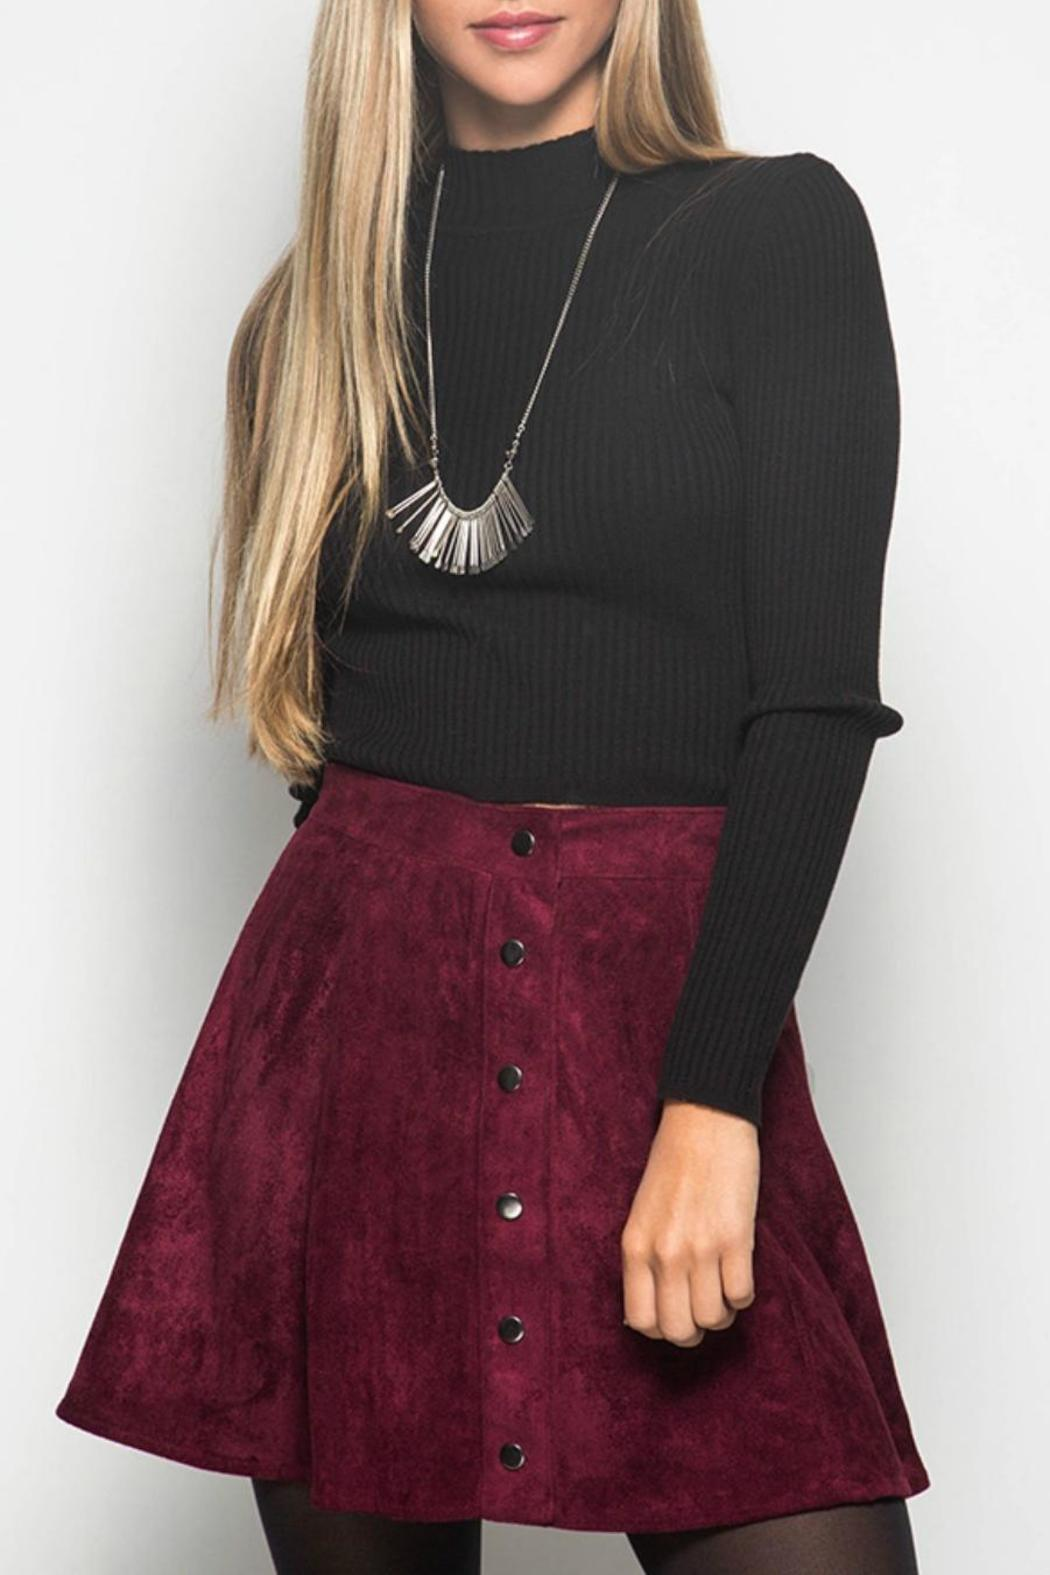 She   Sky Burgundy Suede Skirt from West Virginia by Virginia Lee ...